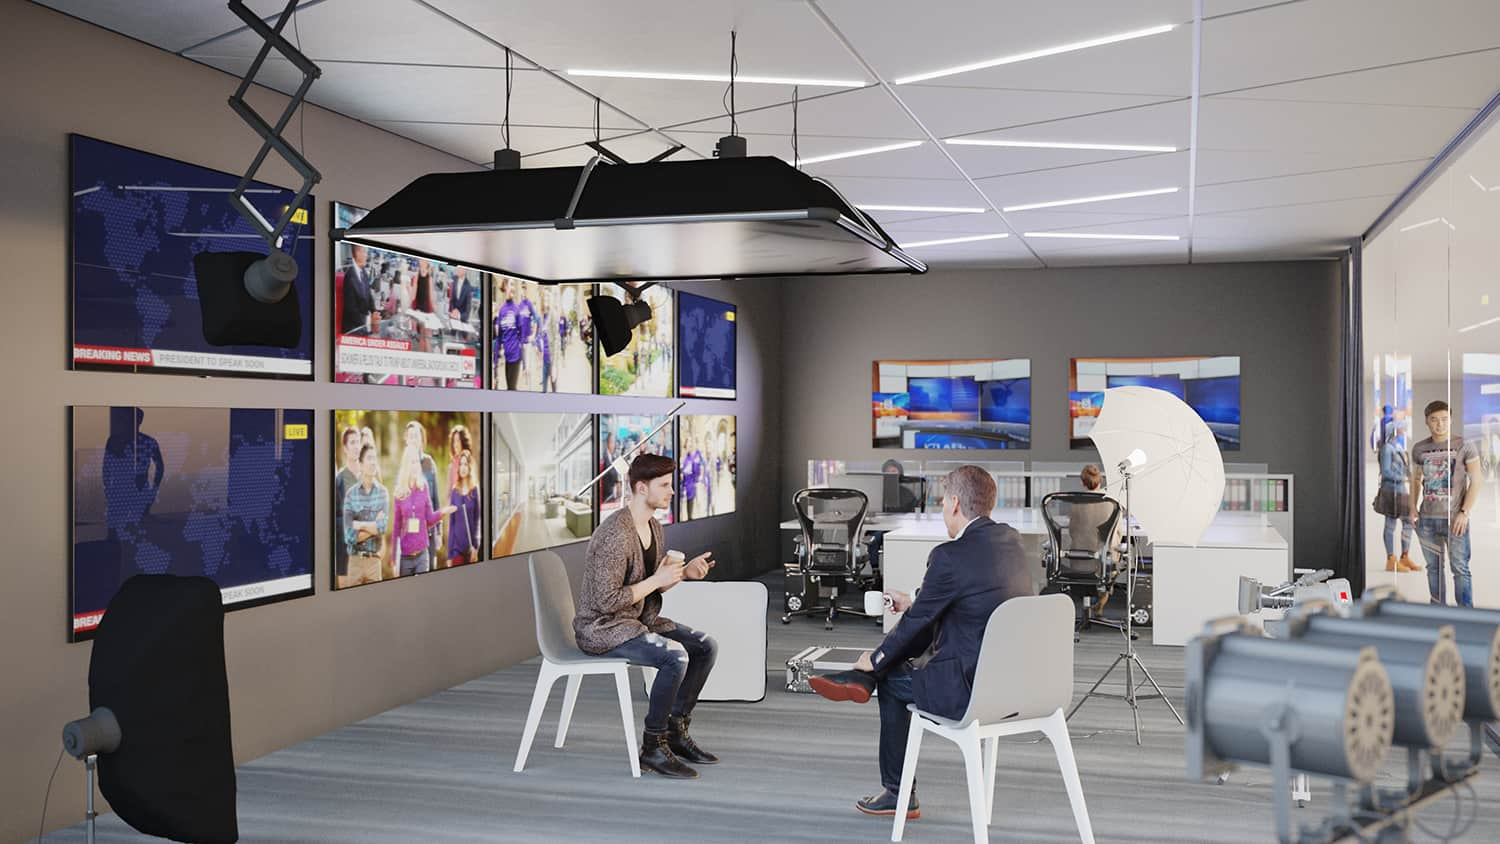 Rendering of a news media room for students to practice interviewing and running technology.